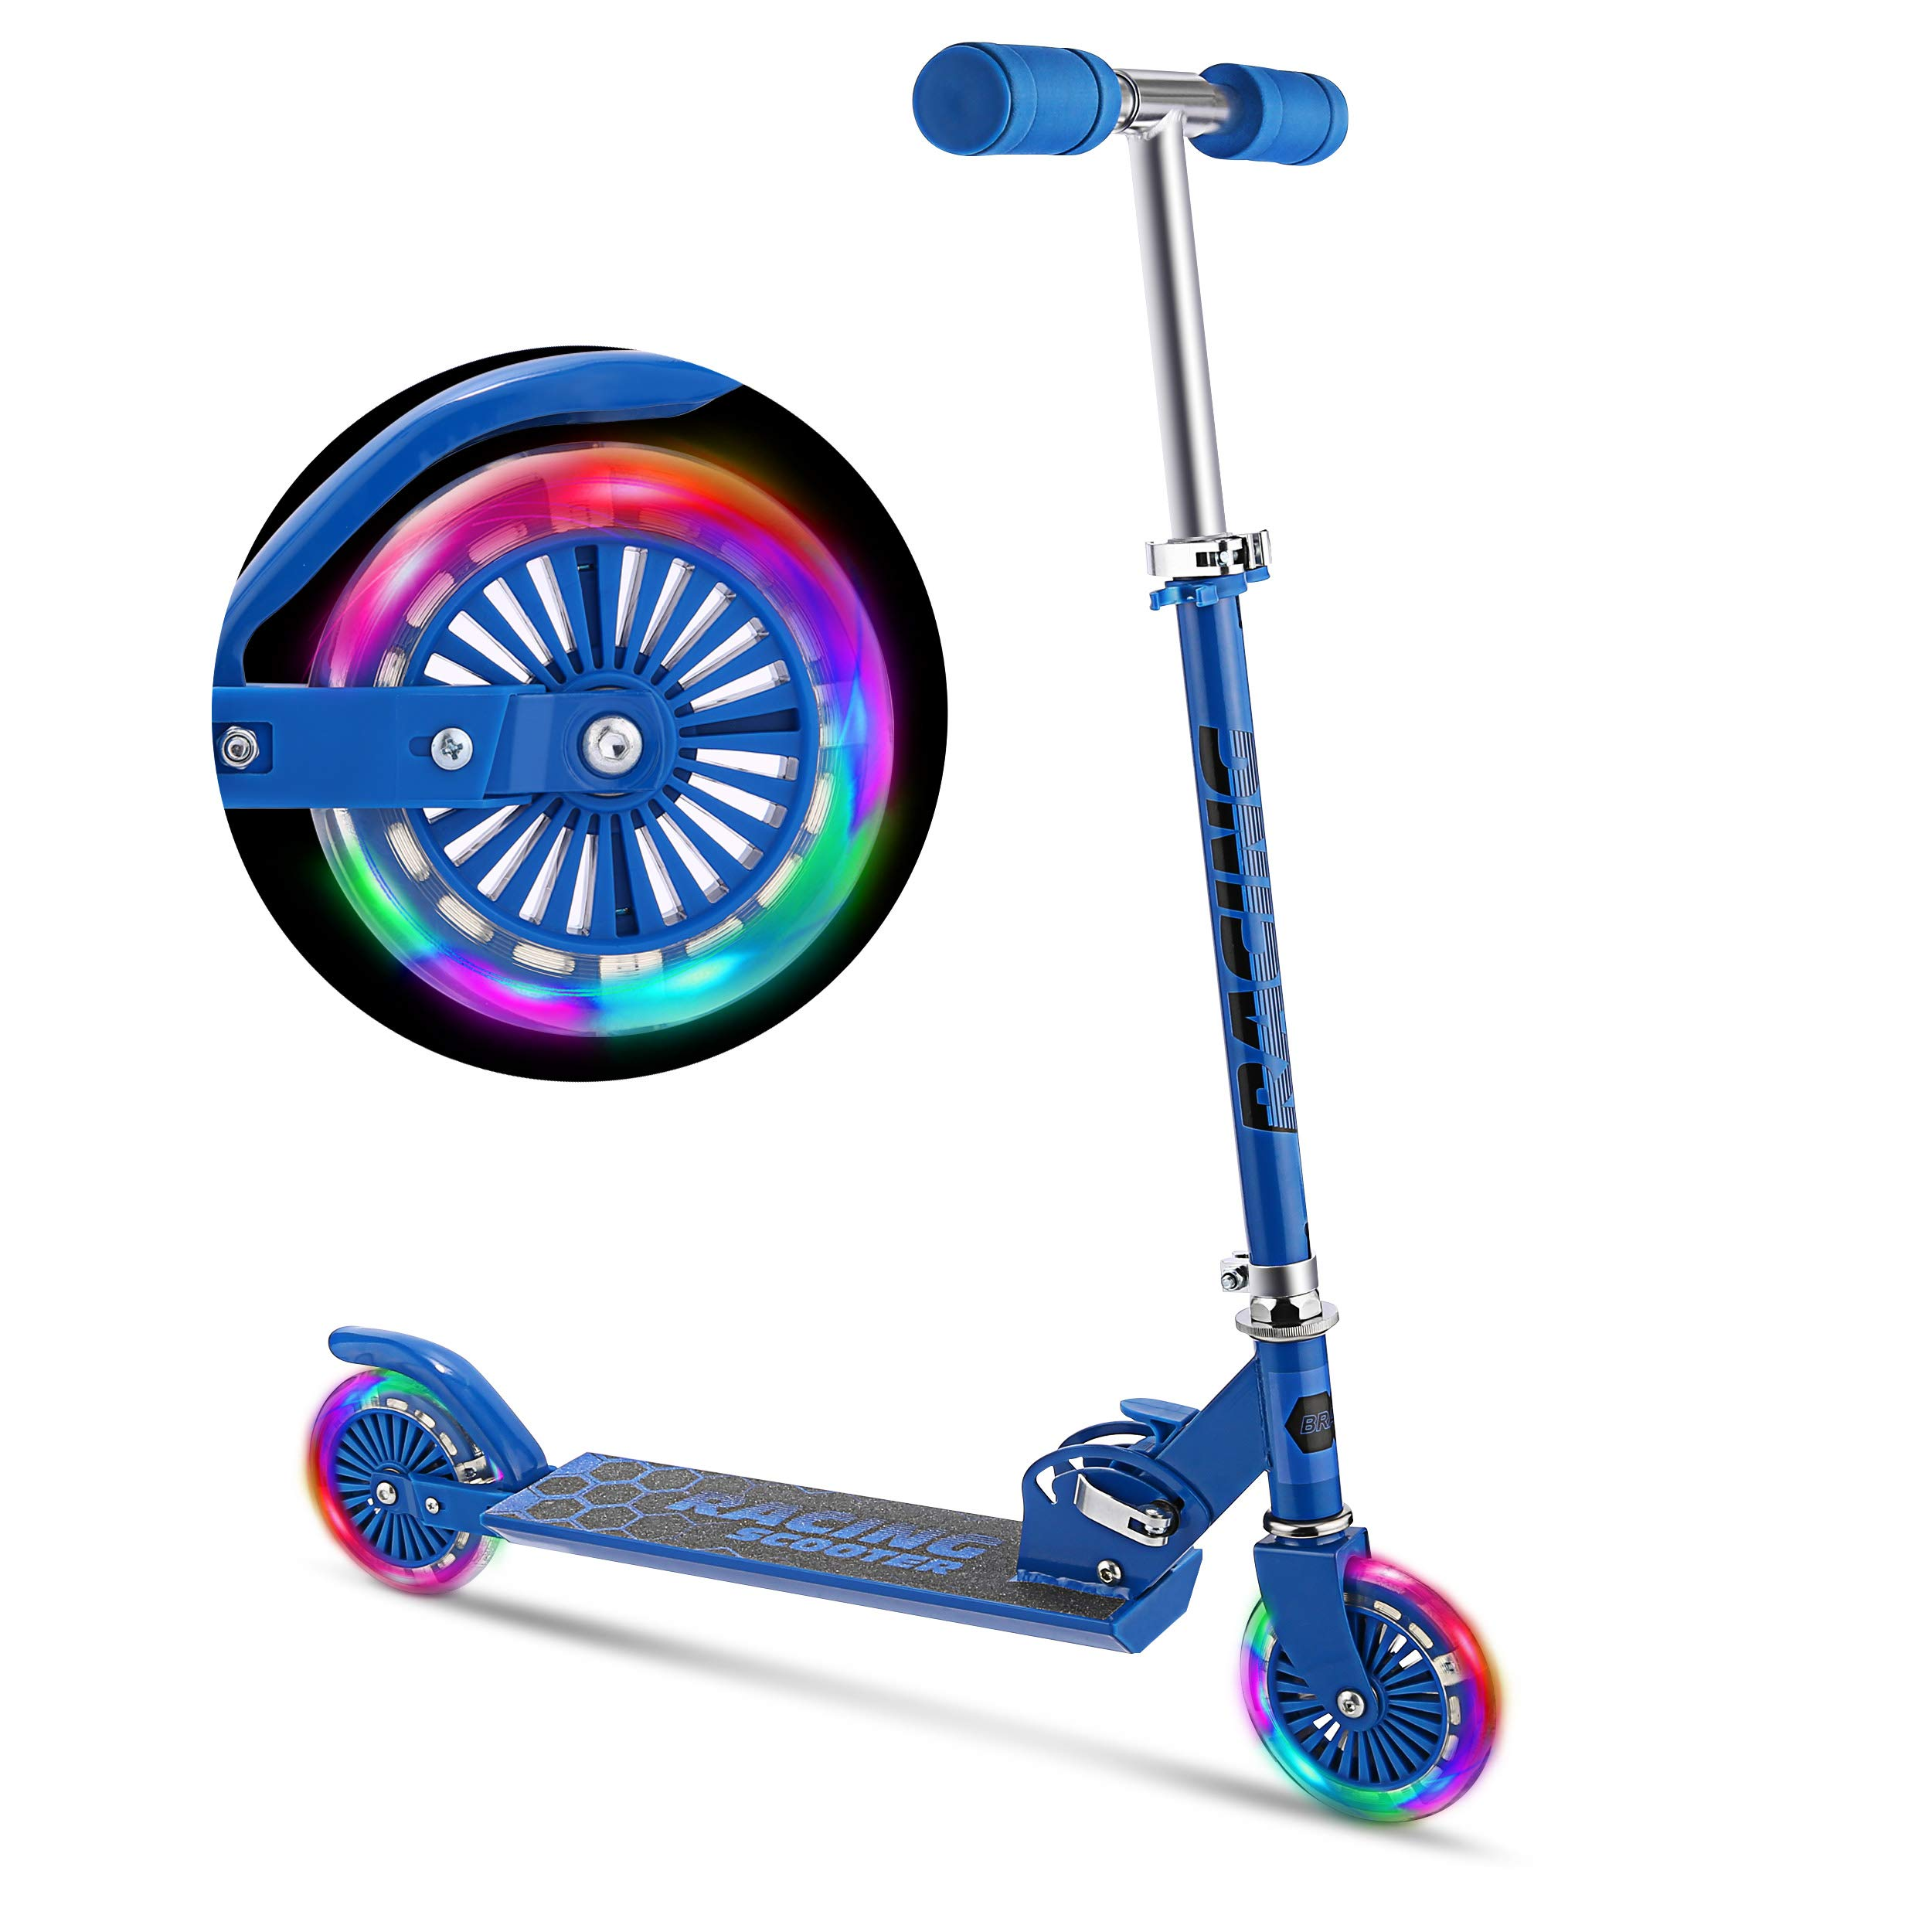 WeSkate Scooter for Kids with LED Light Up Wheels, Adjustable Height Kick Scooters for Boys and Girls, Rear Fender Break|5lb Lightweight Folding Kids Scooter, 110lb Weight Capacity (Blue) by WeSkate